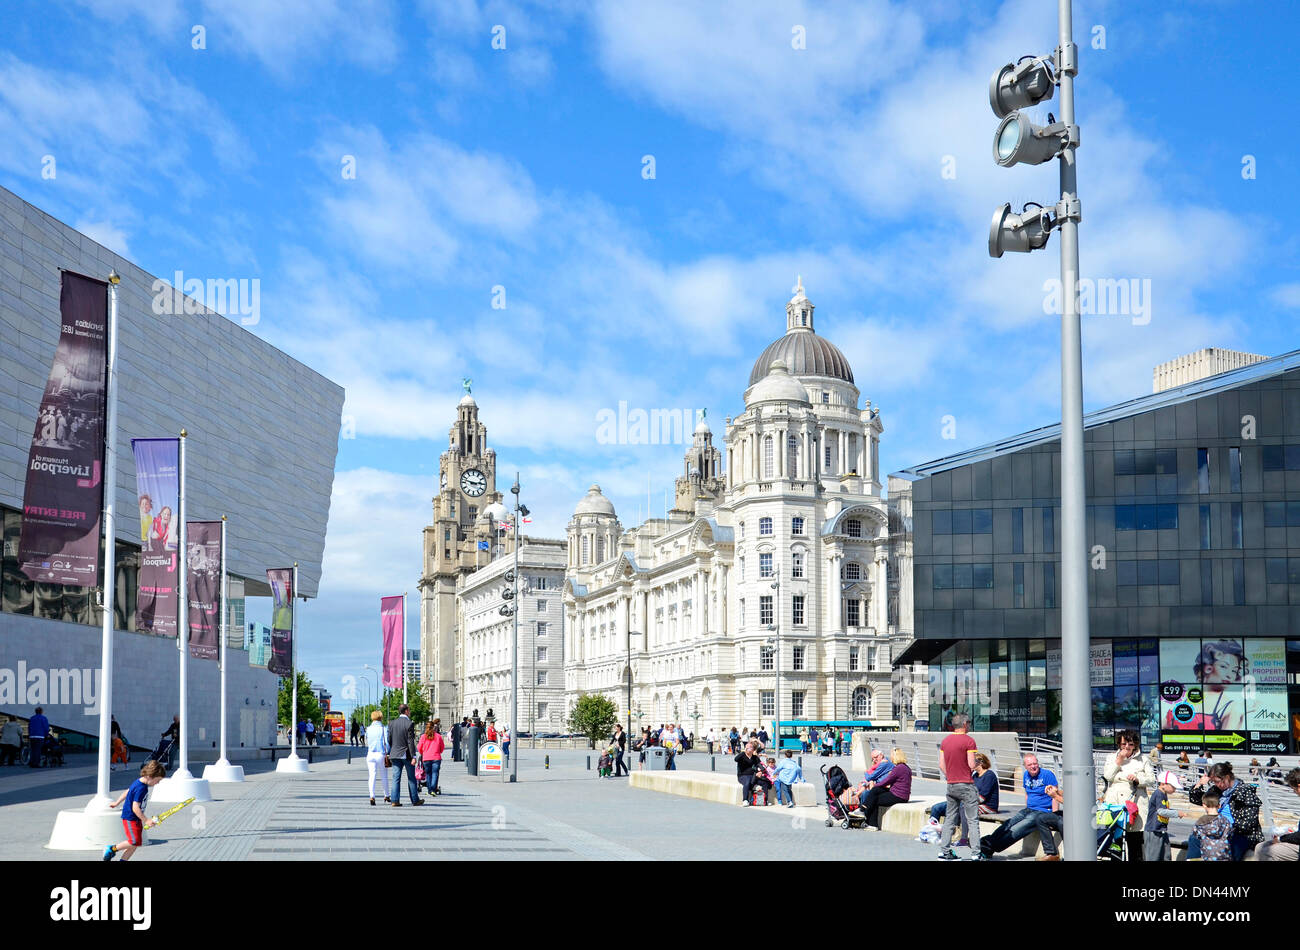 Outside the Museum of Liverpool, Merseyside, UK - Stock Image